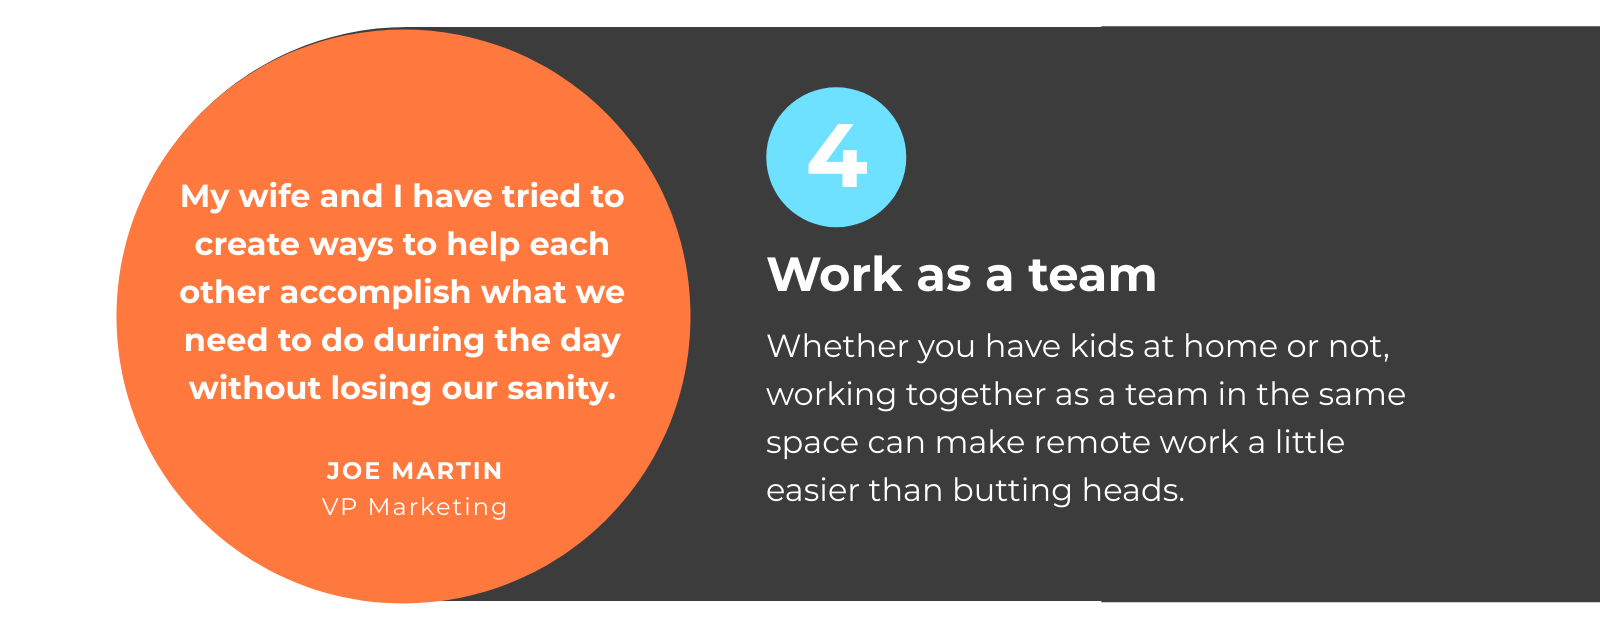 WFH with Partner Tip 4: Work as a Team